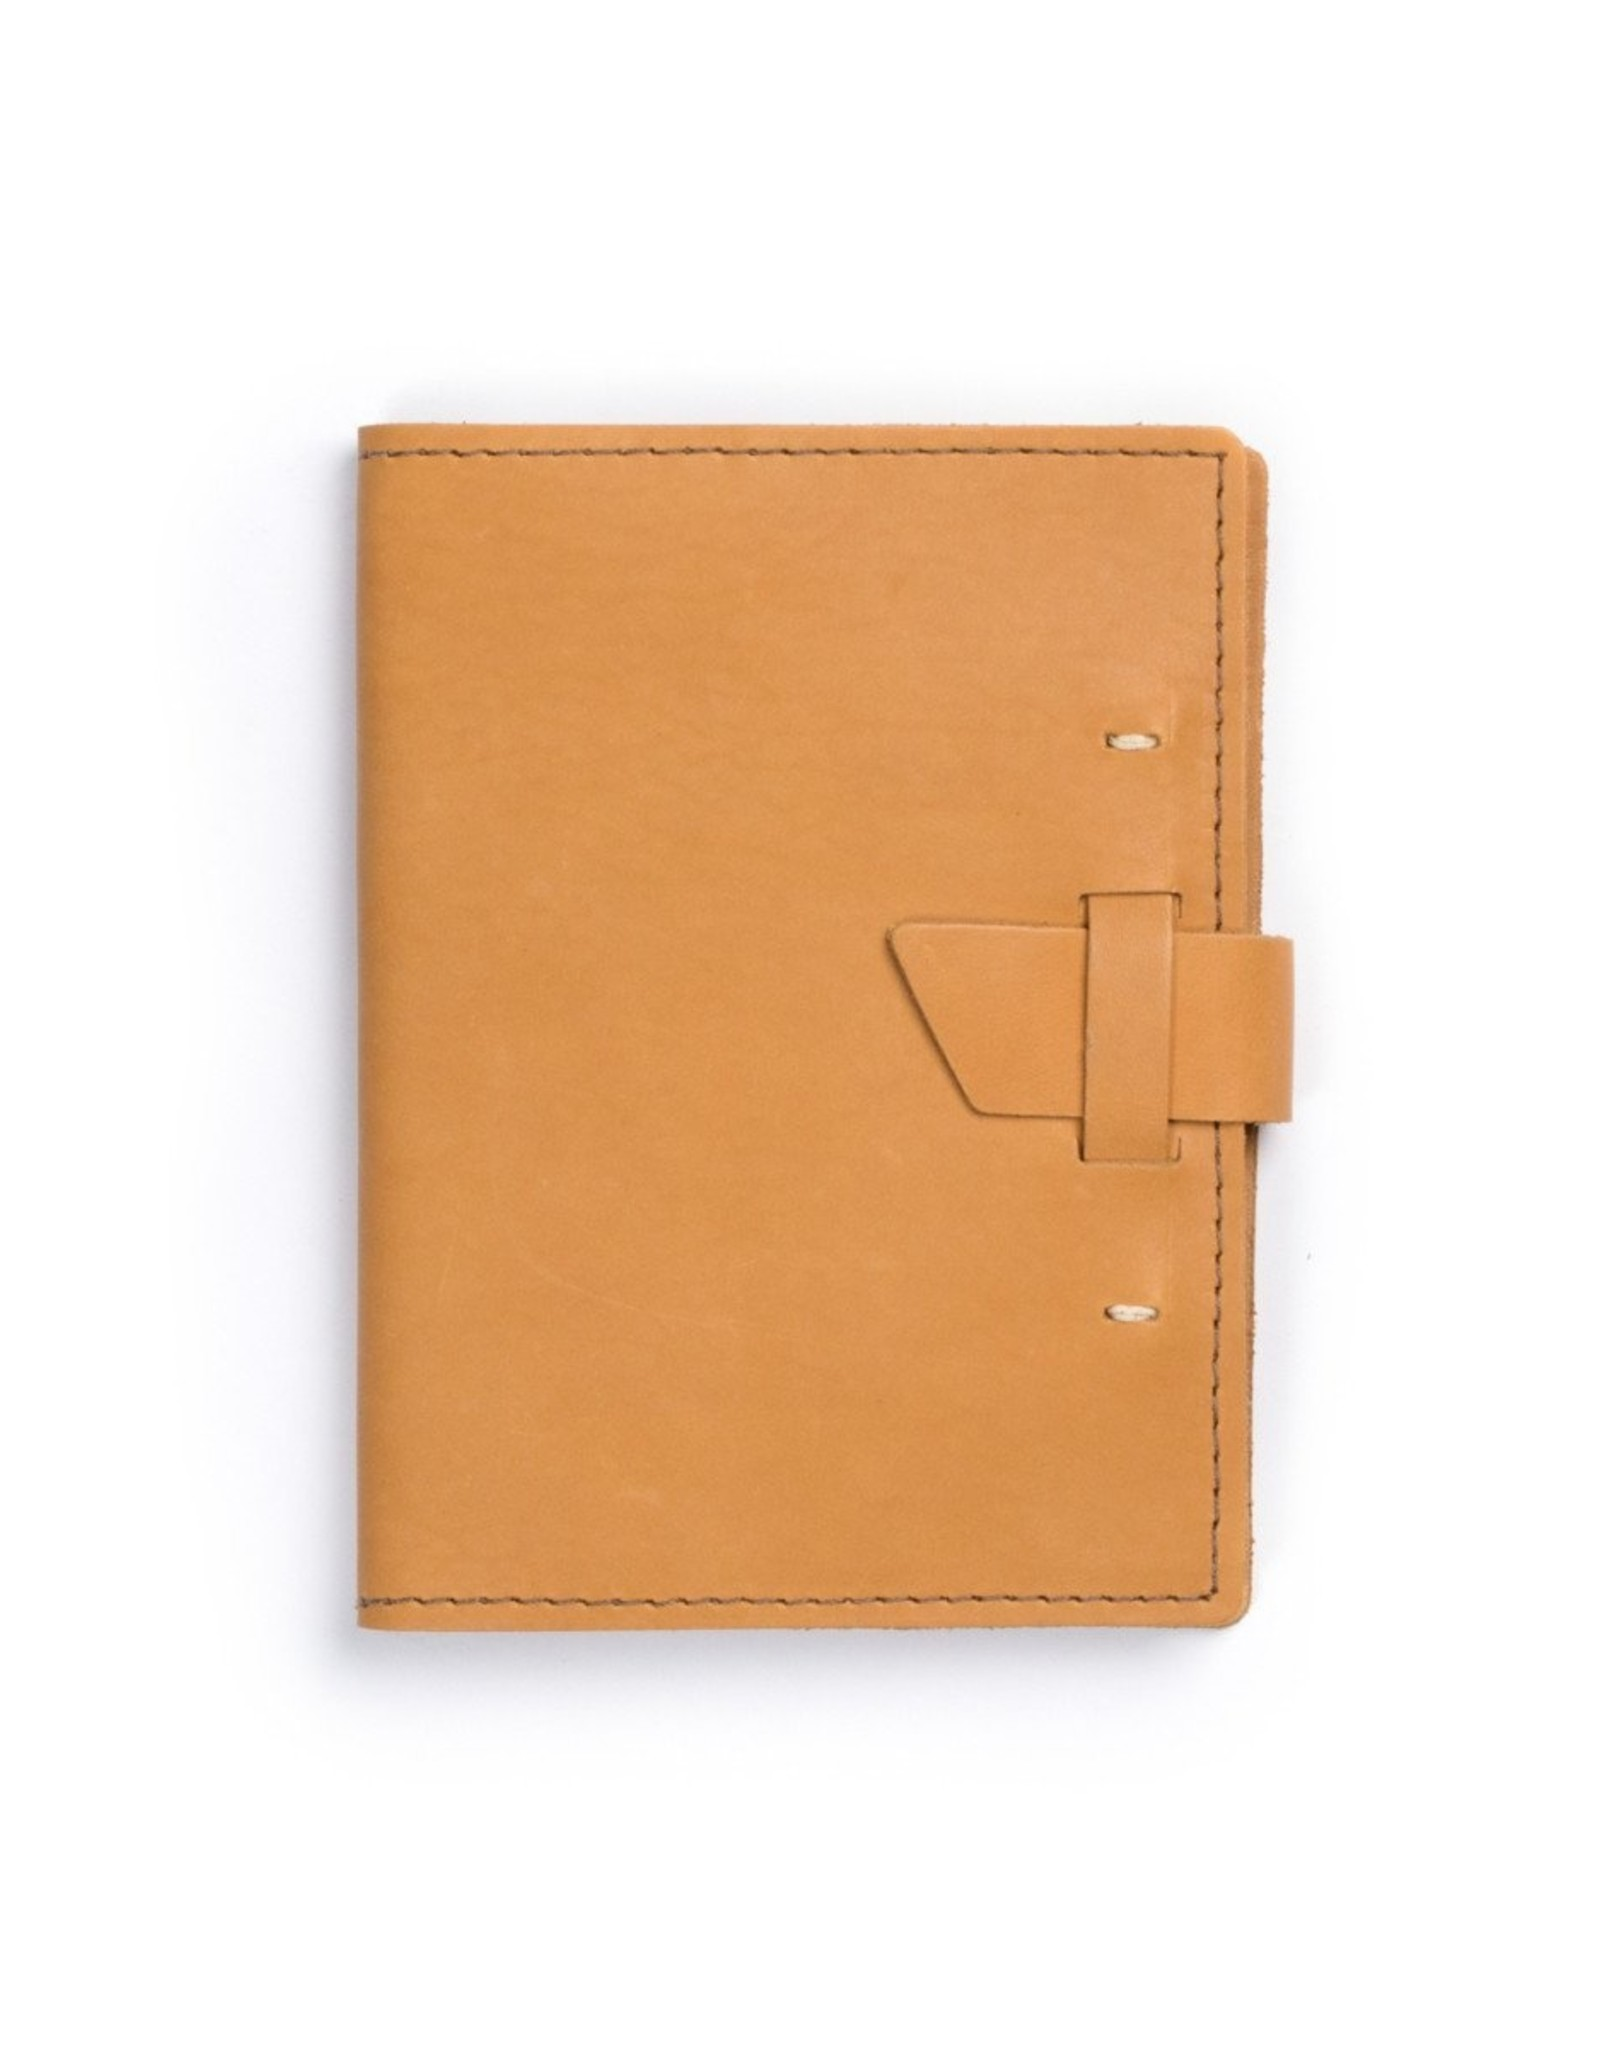 Rustico Wasatch Leather Refillable Notebooks by Rustico